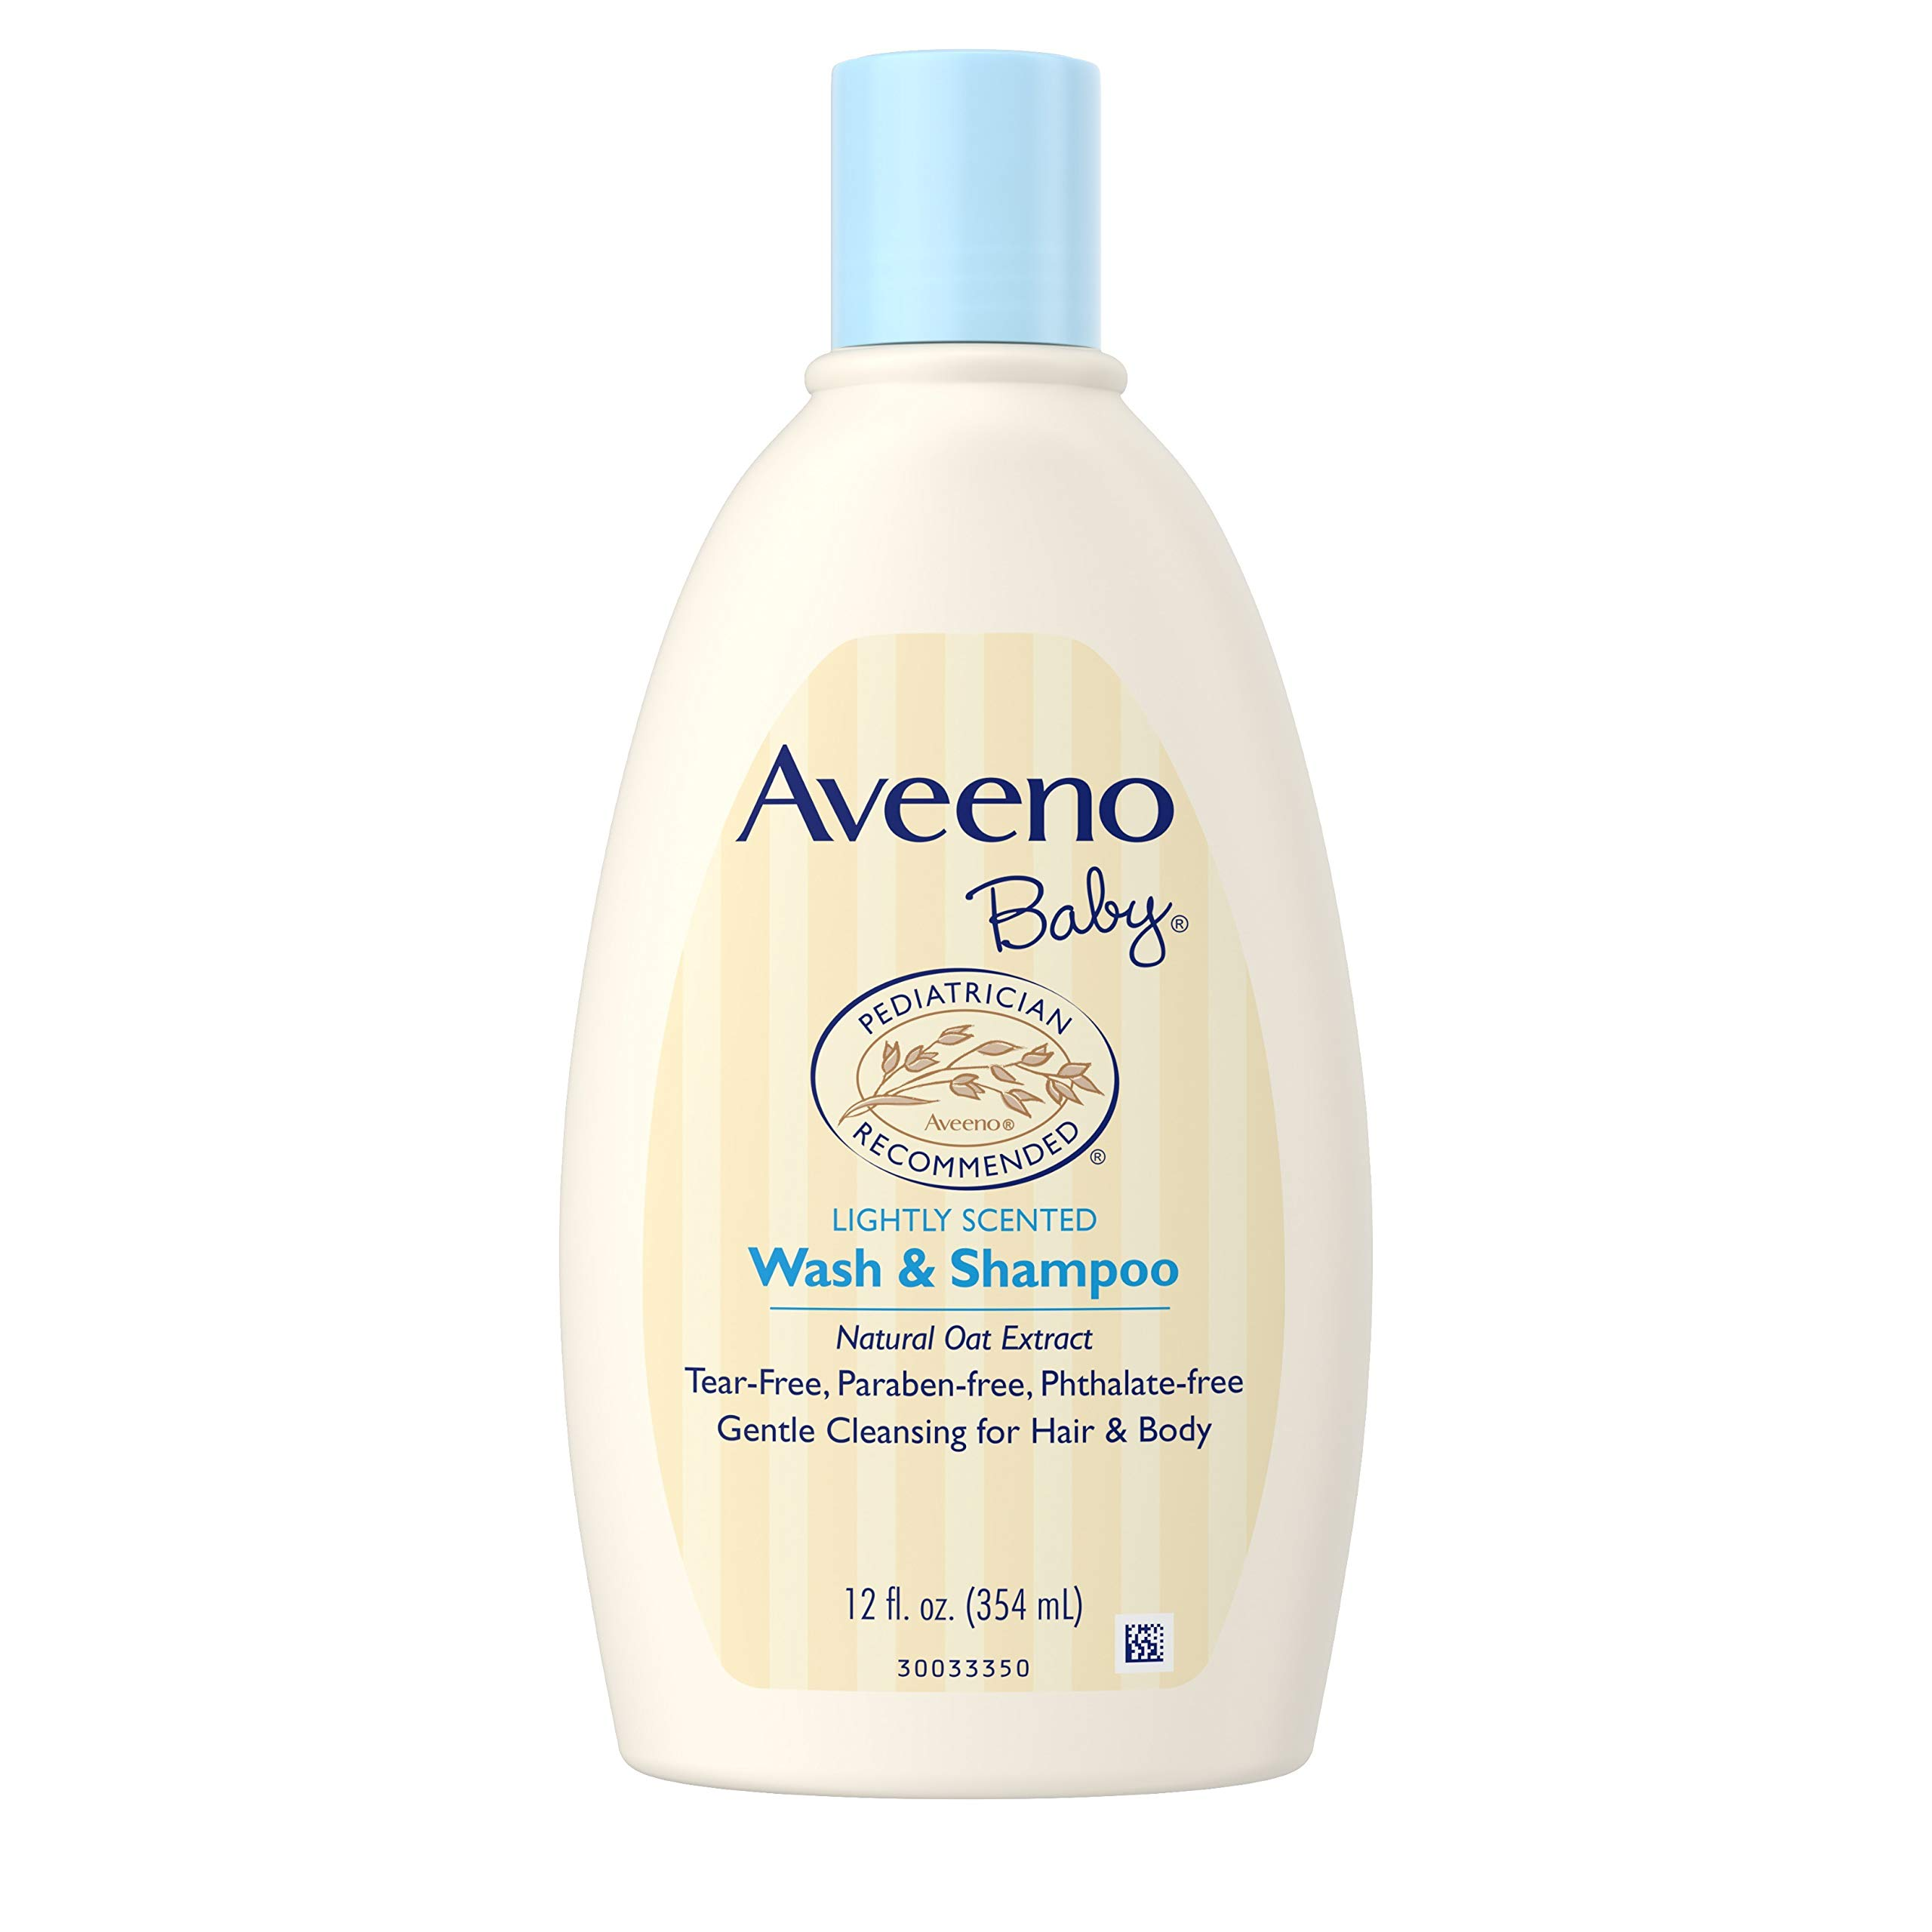 Aveeno Baby Gentle Wash & Shampoo with Natural Oat Extract, Tear-Free & Paraben-Free Formula For Hair & Body, Lightly Scented, 12 fl. oz